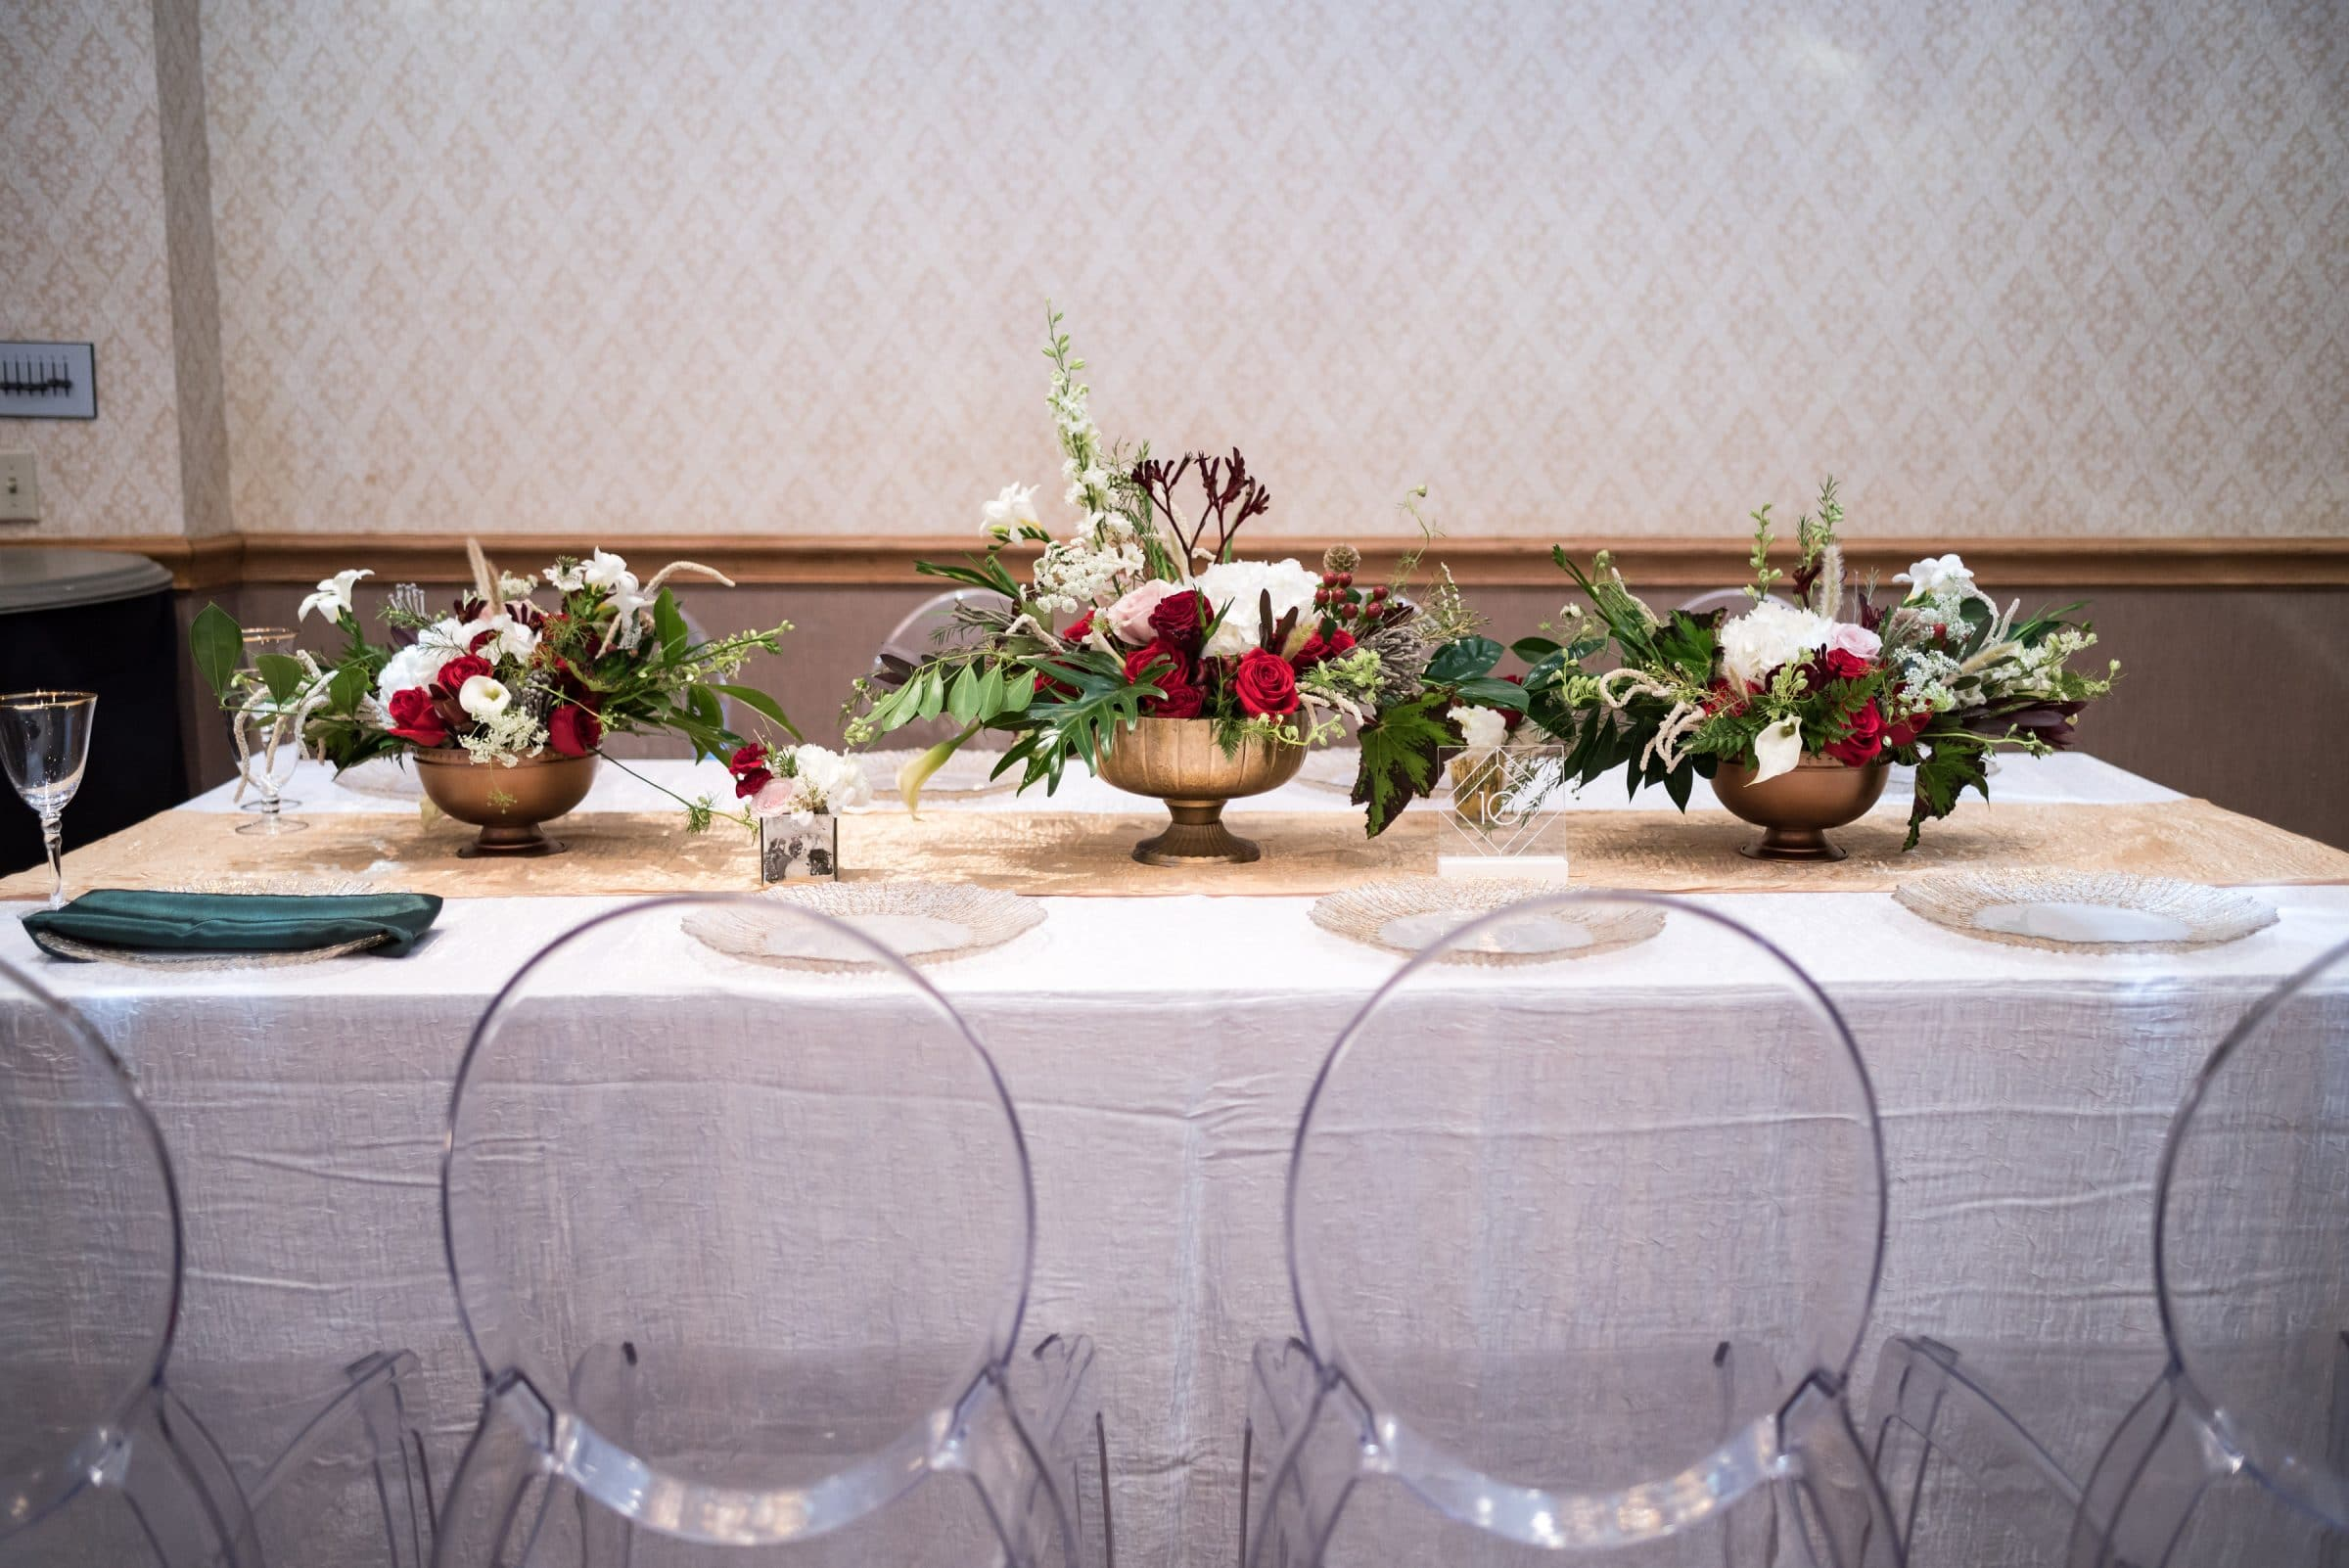 White Table with Clear Chairs and Christmas Floral